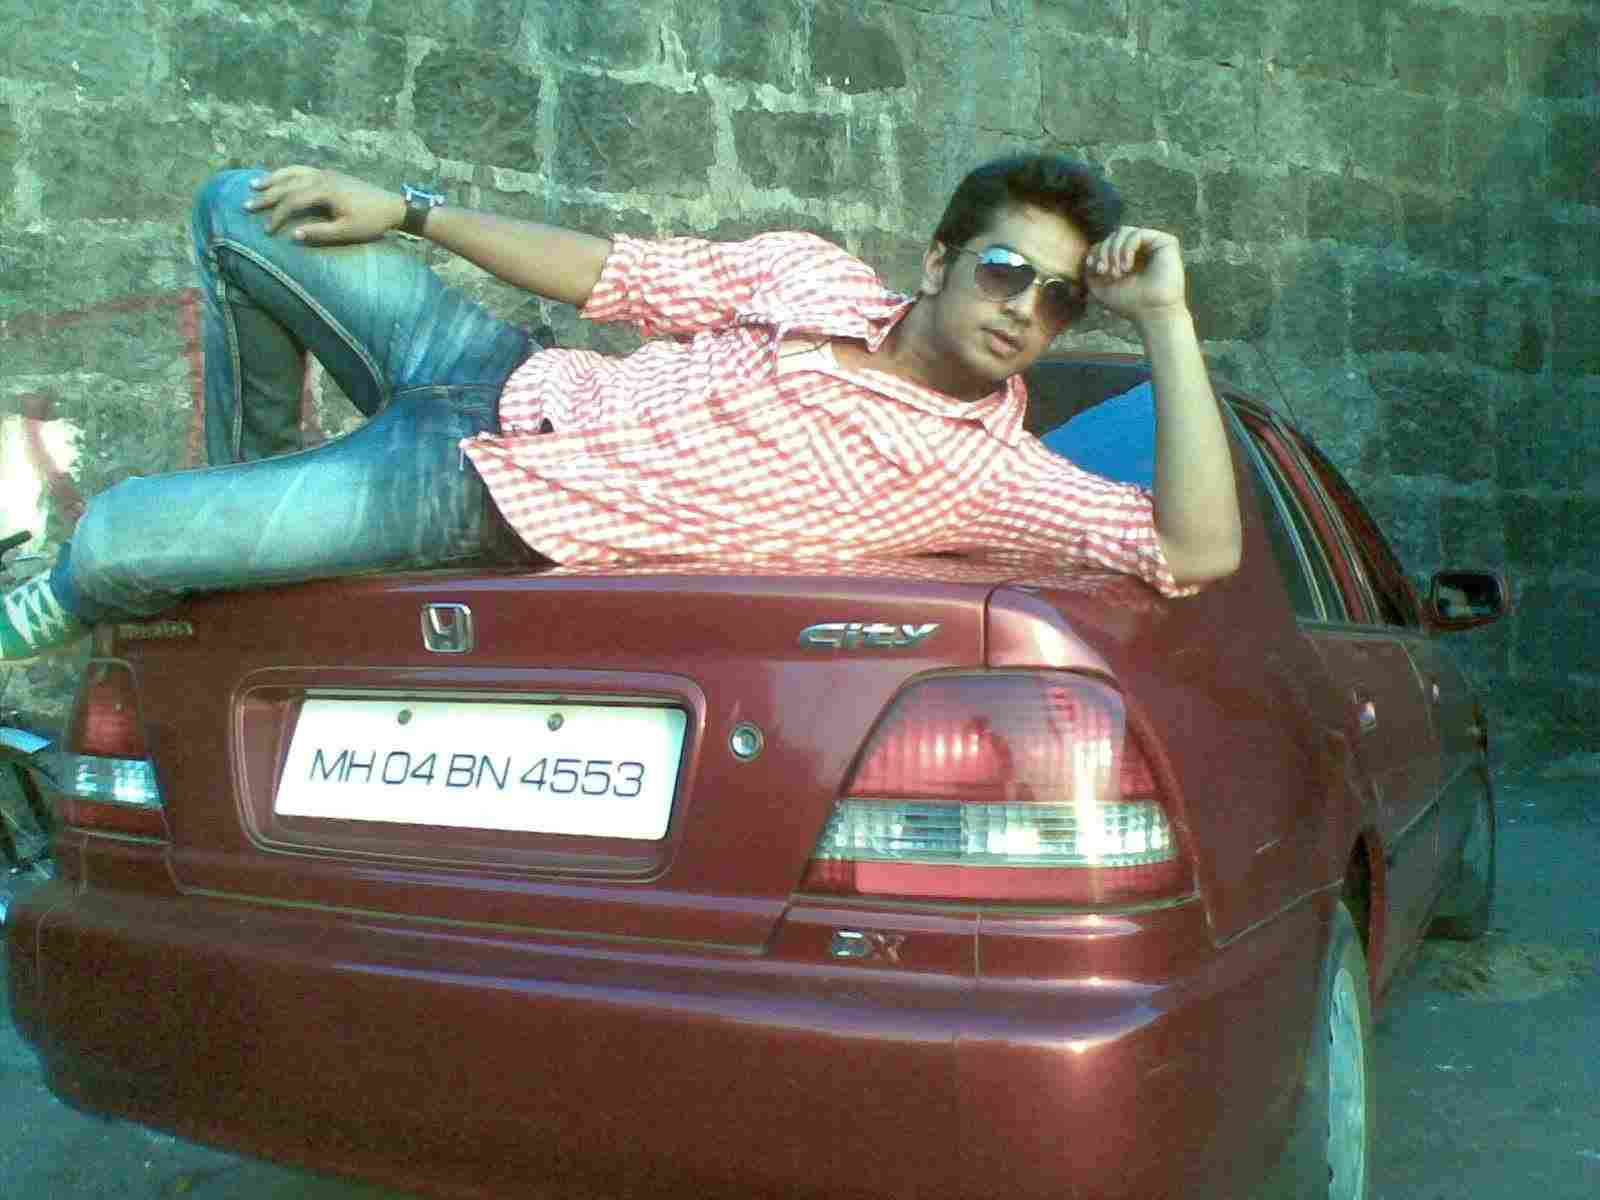 Fahad Ali with his car